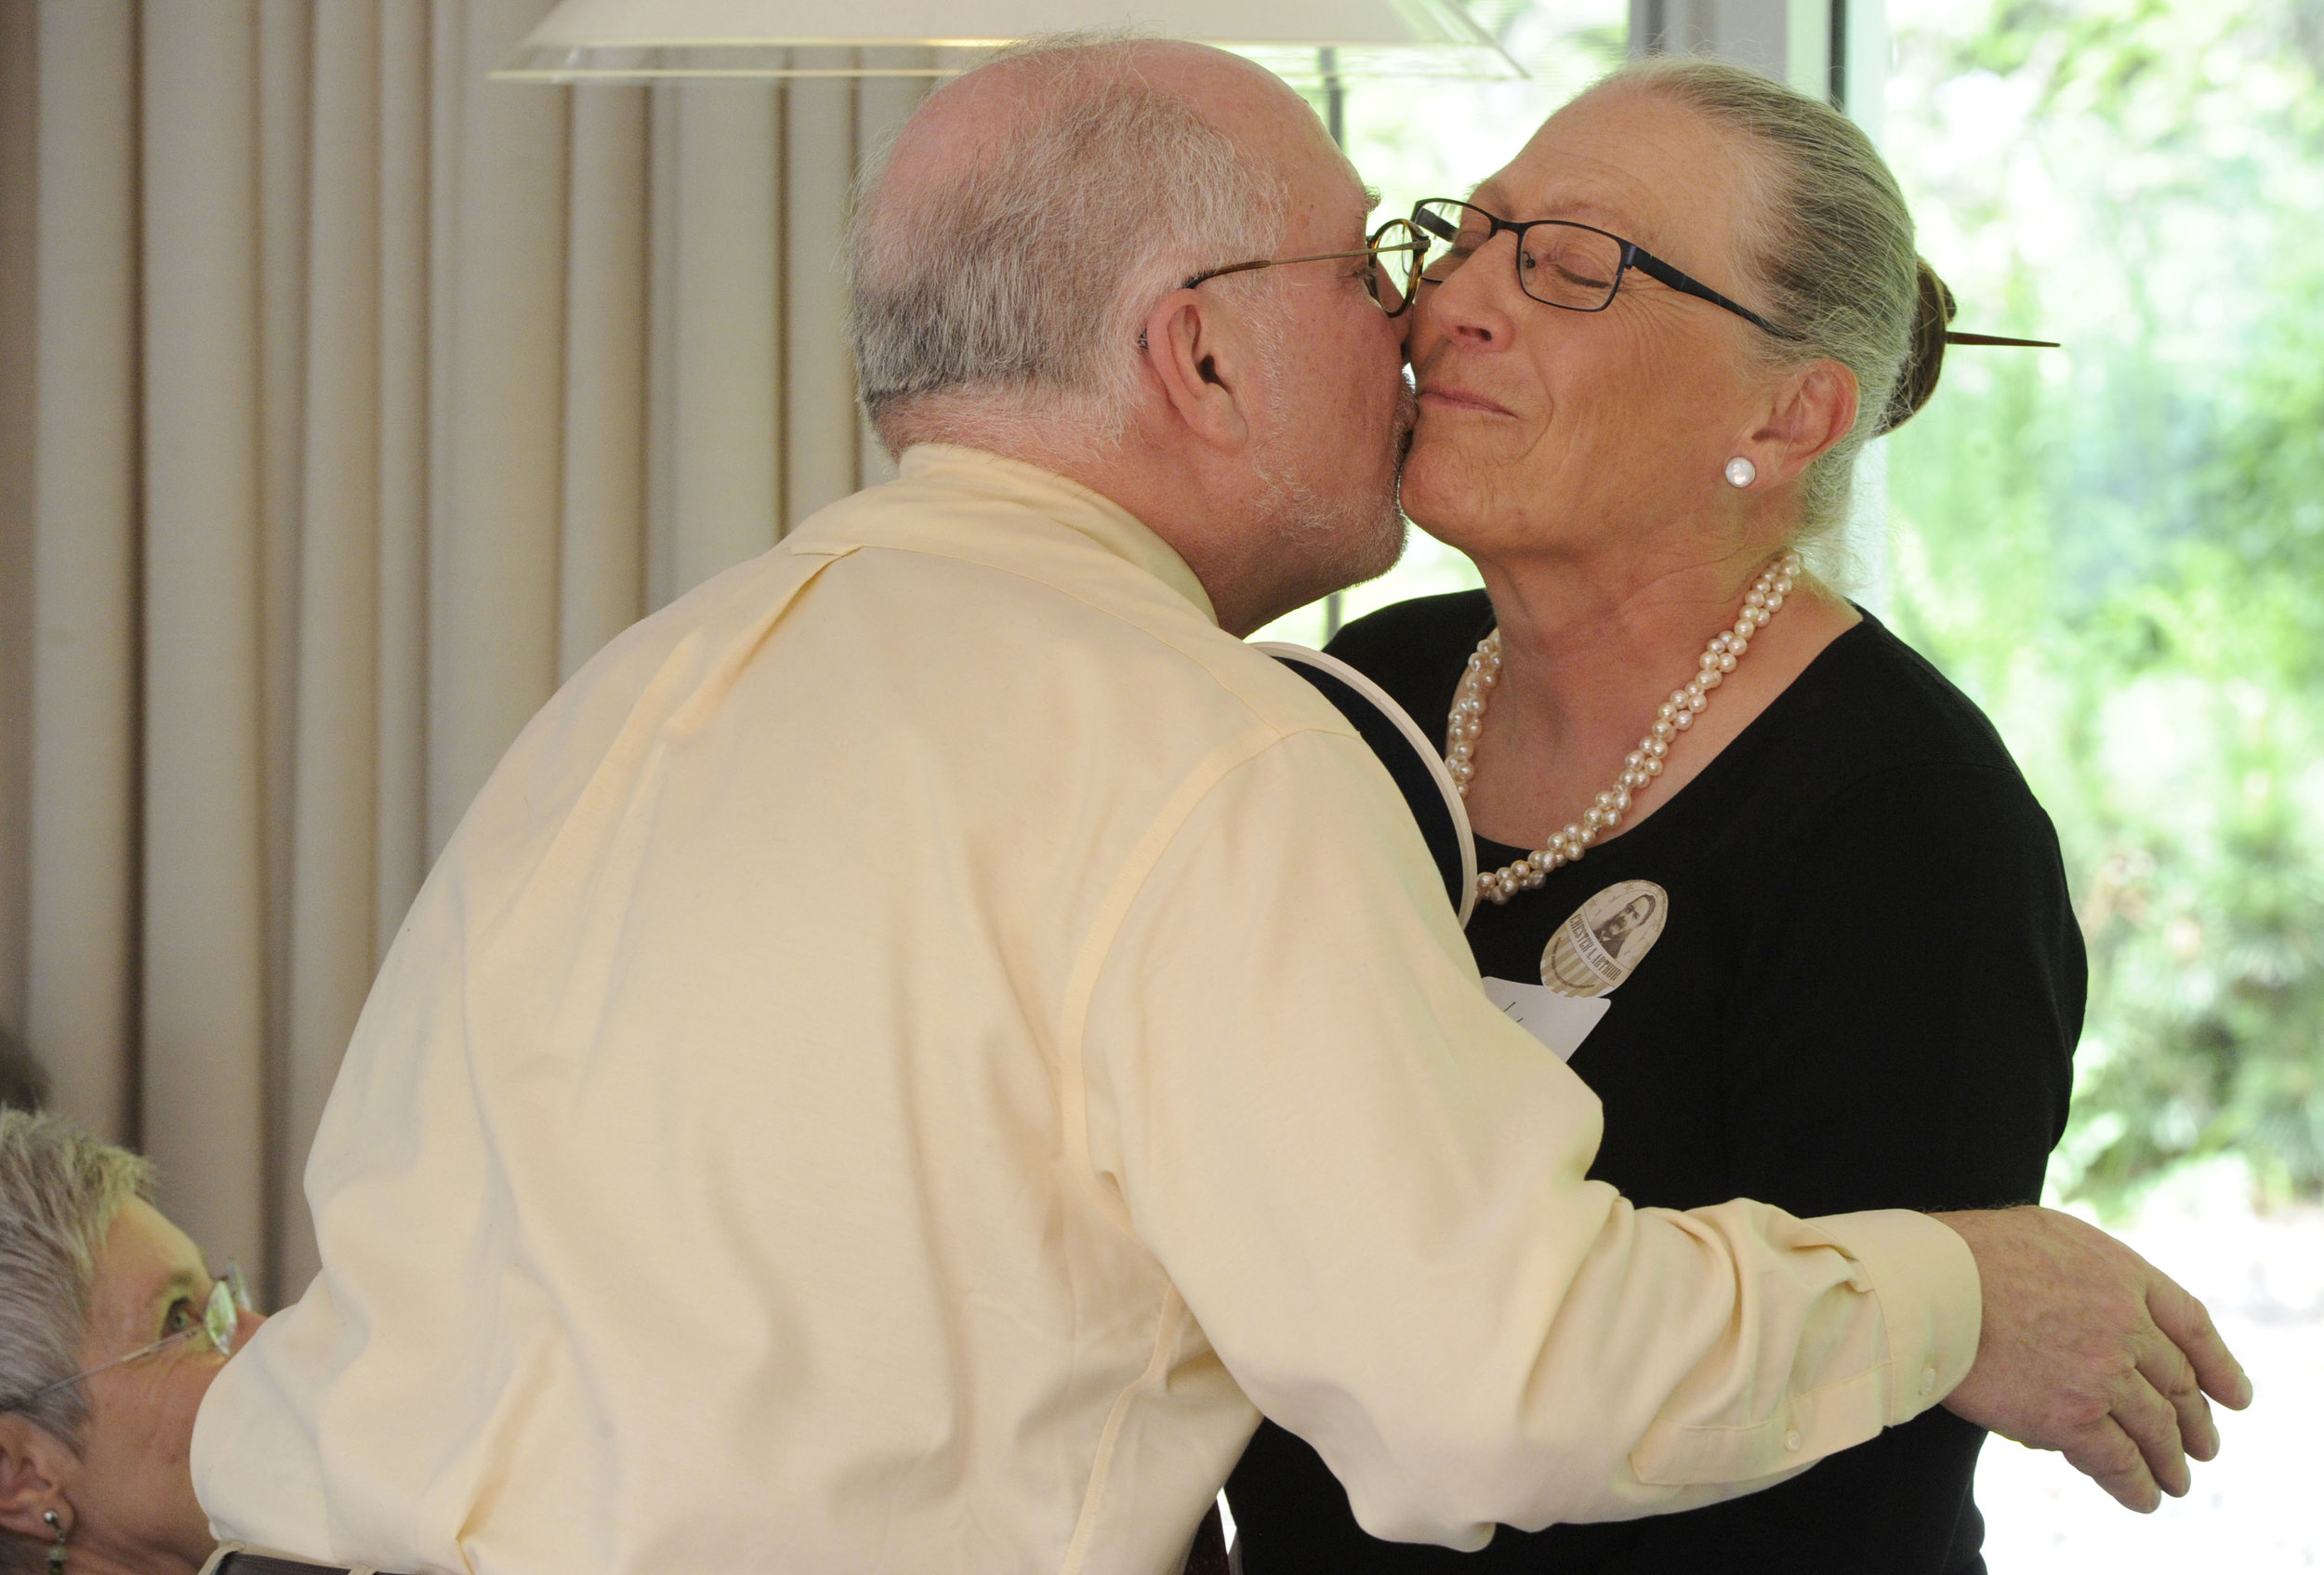 Jeb Wallace-Brodeur/Time Argus Staff Photo State Curator, David Schutz, gives Vivien Fritz of Marshfield a congratulatory kiss as she retires from being a long-time tour guide and coordinator.